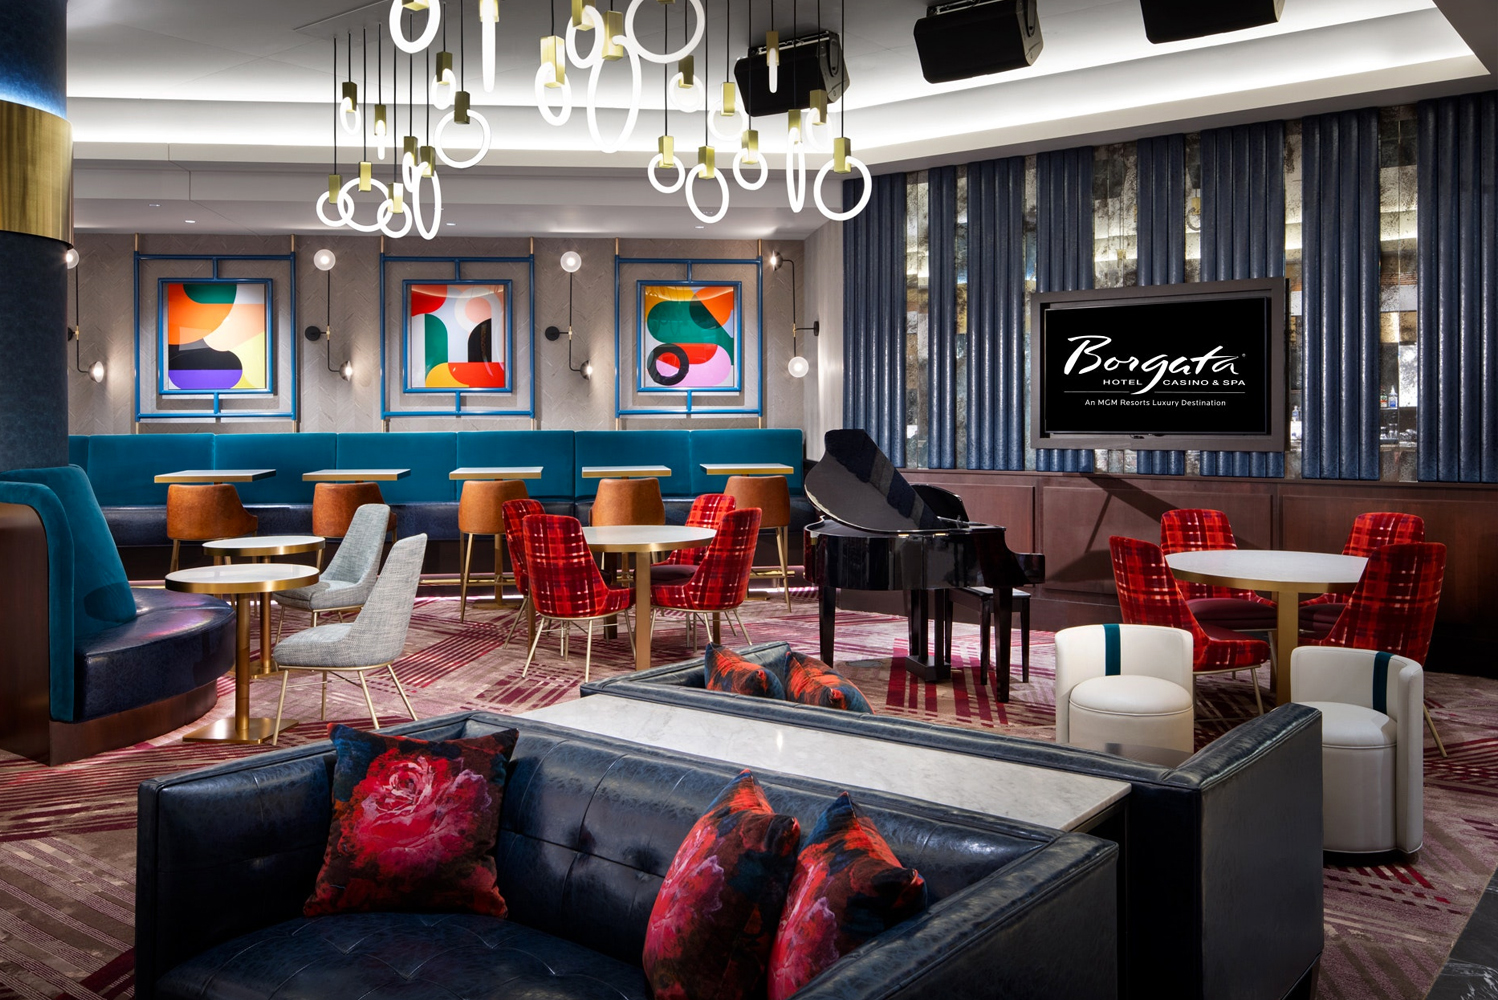 With interior design by Avenue and architecture by Nelson Worldwide, the scene will present a fresh take on classic Art Deco with undertones in a polished speakeasy ambiance. Photo credit: Avenue Design